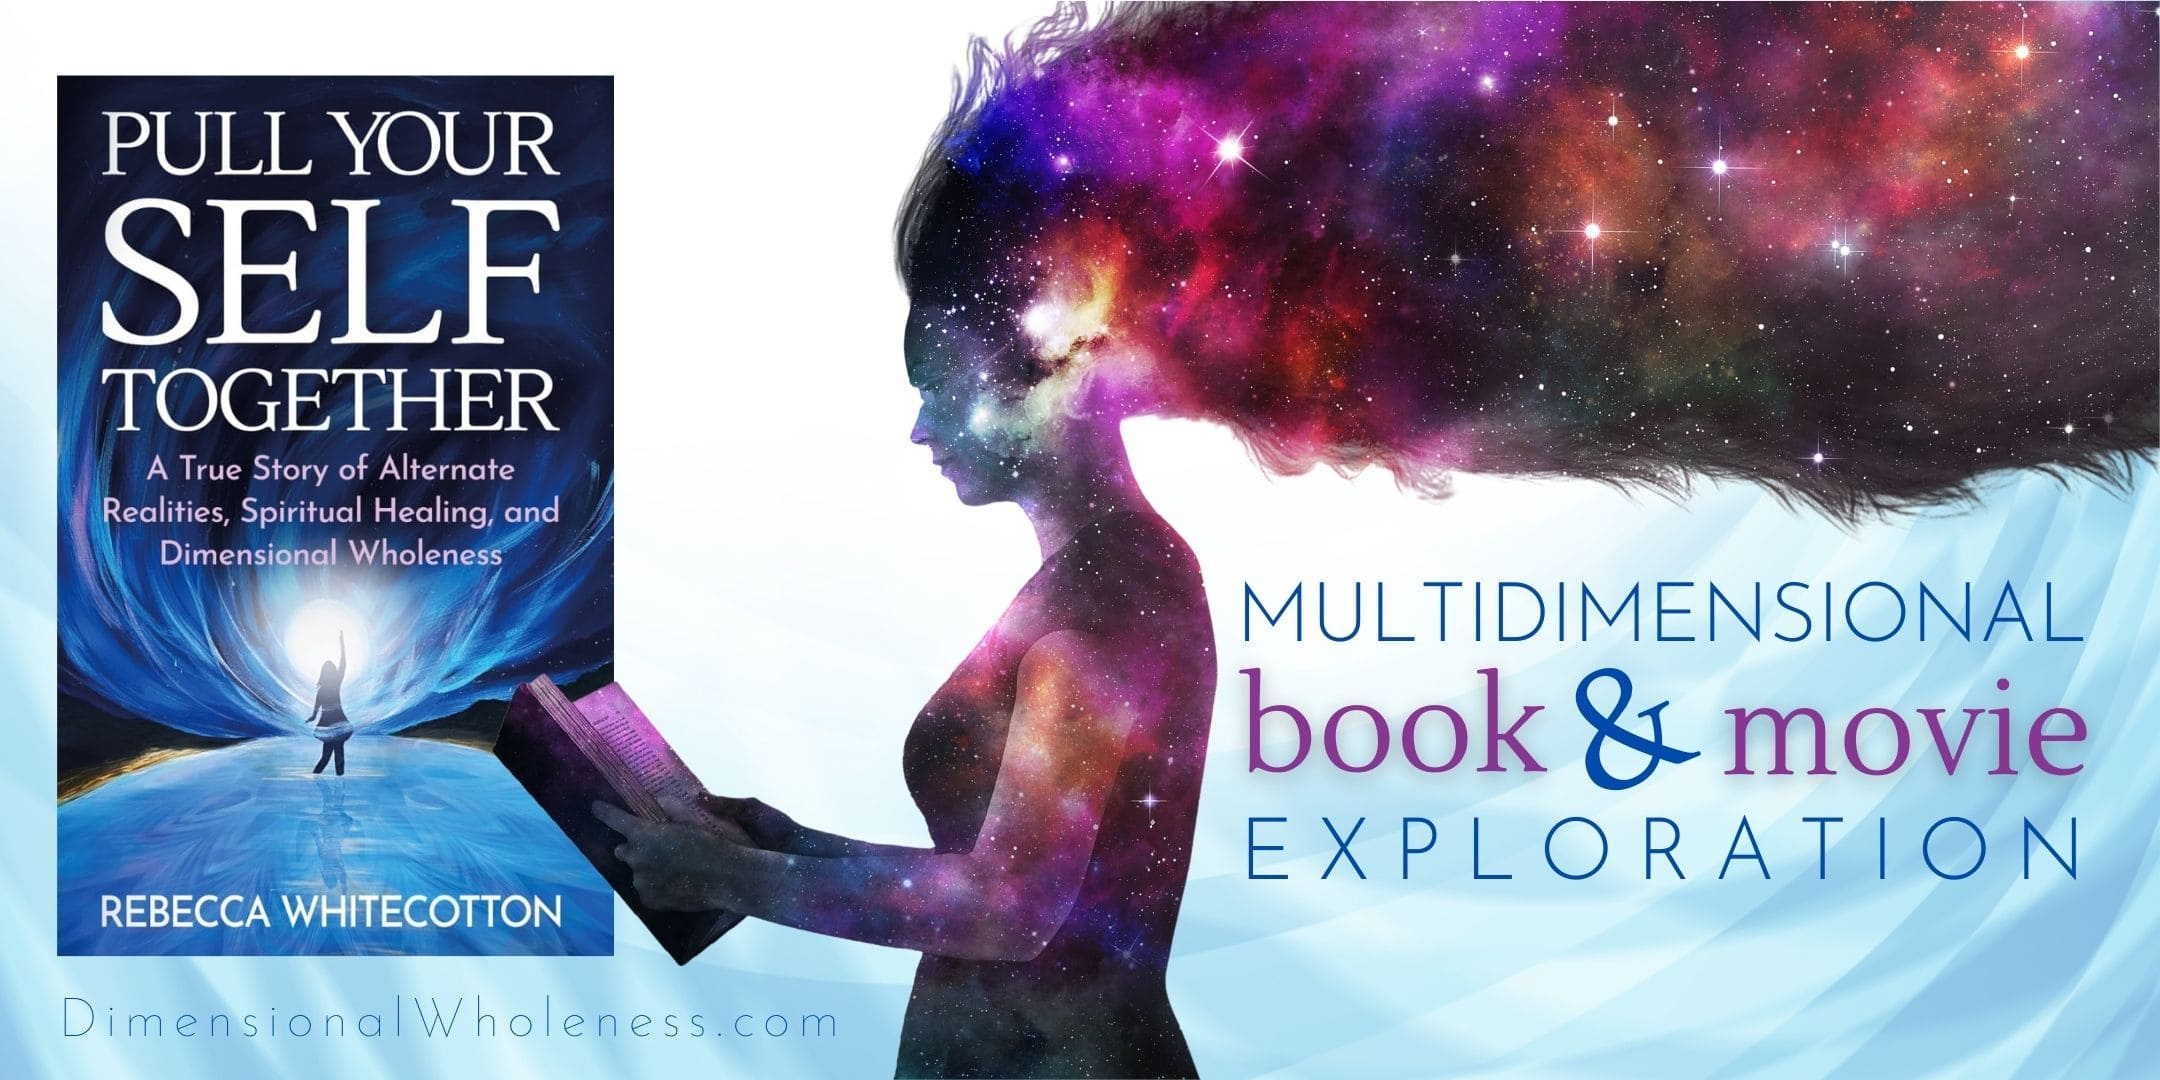 Multidimensional Book and Movie Exploration: Pull Your Self Together